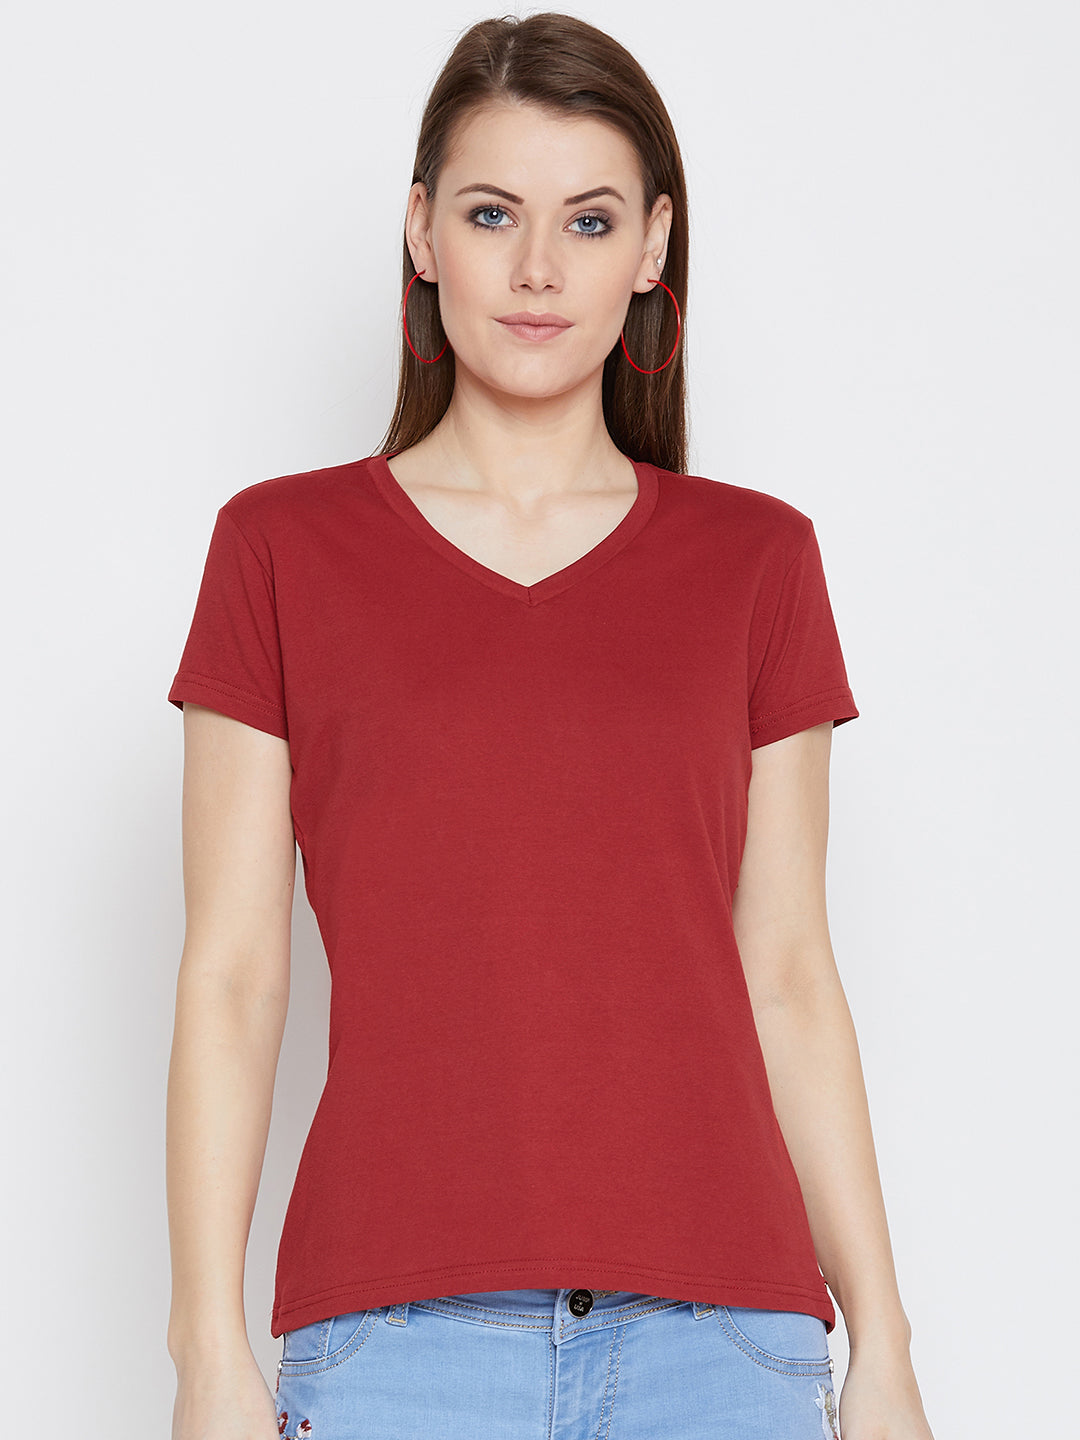 JUMP USA Women Red Cotton Solid Casual V-Neck Neck Tshirt - JUMP USA